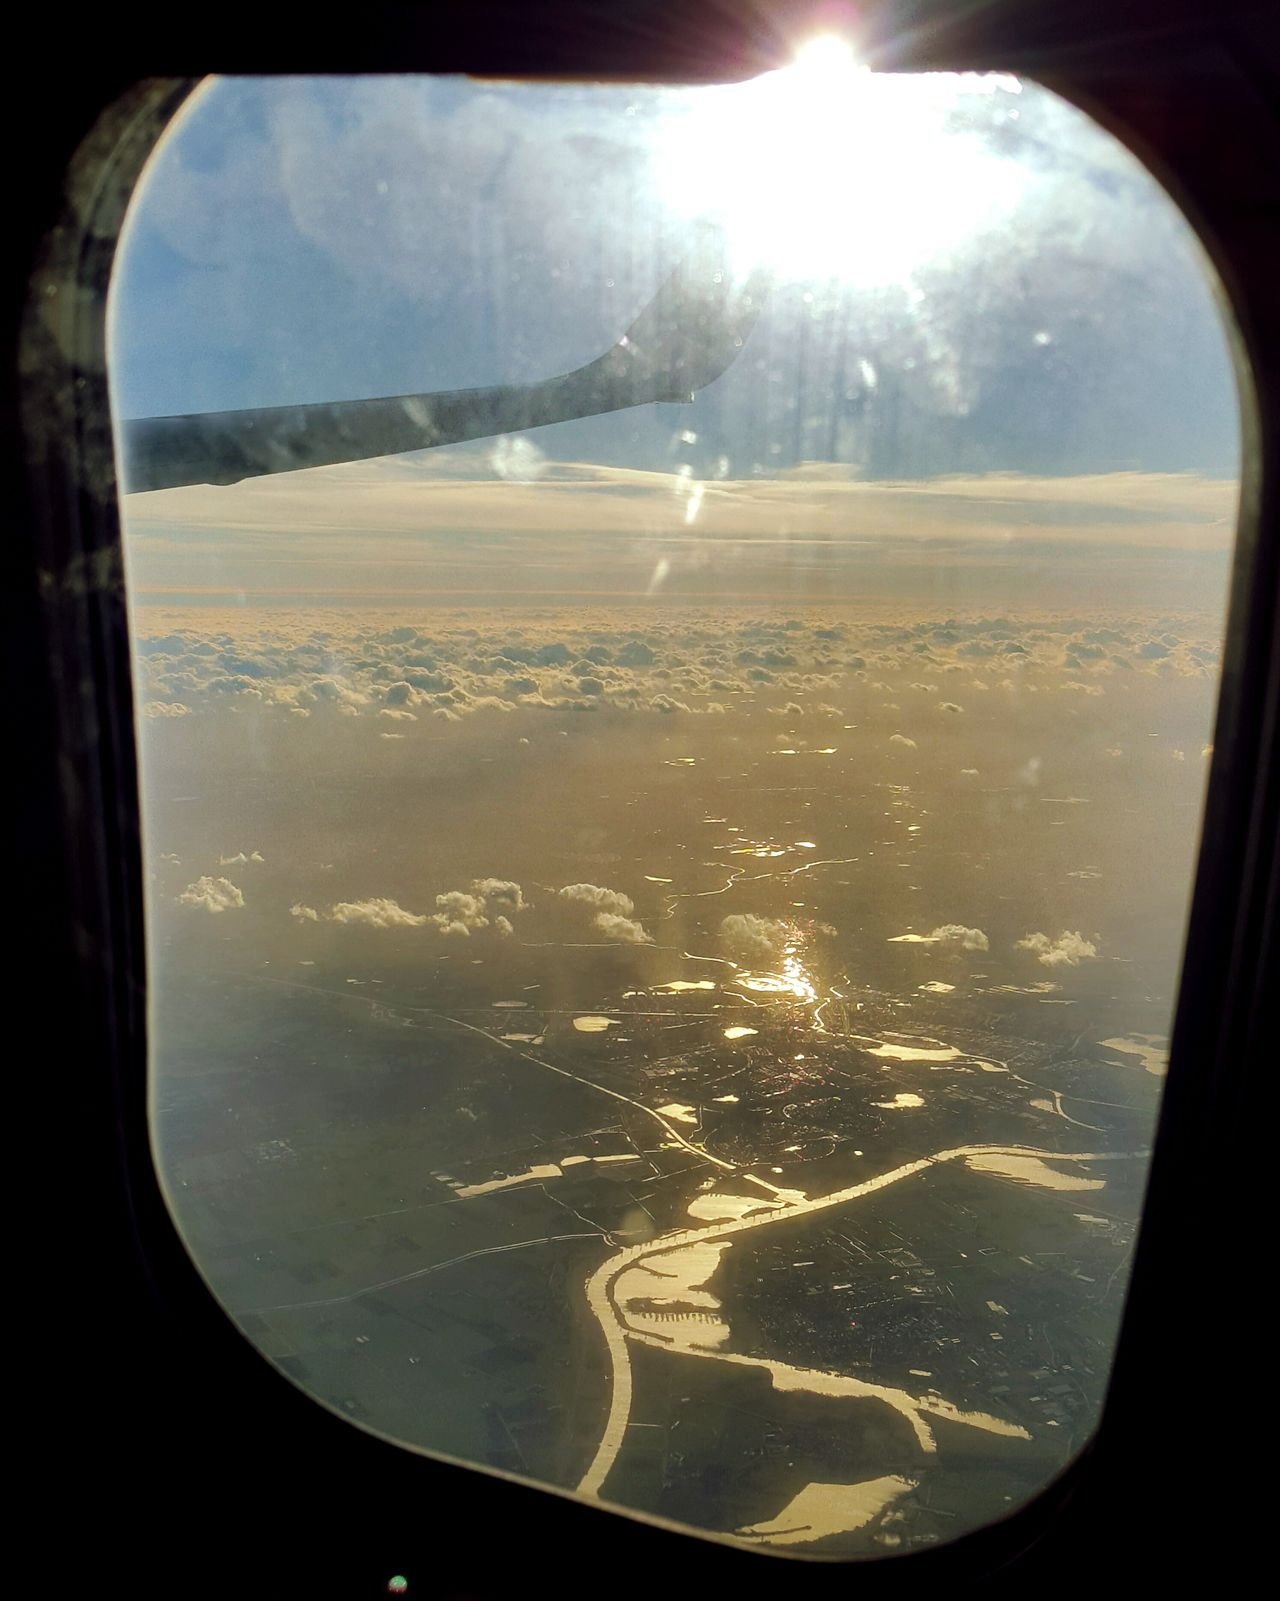 Window Looking Through Window Travel Airplane Sun Sunlight Flying Sky Sunbeam Commercial Airplane Mode Of Transport Traveling Travel Photography Amazing View Photography Taking Pictures Flying High View From The Window... Scenics Beautiful Landscape Dutch Landscape Dutch Countyside Dutch Landscapes Dutch Agriculture